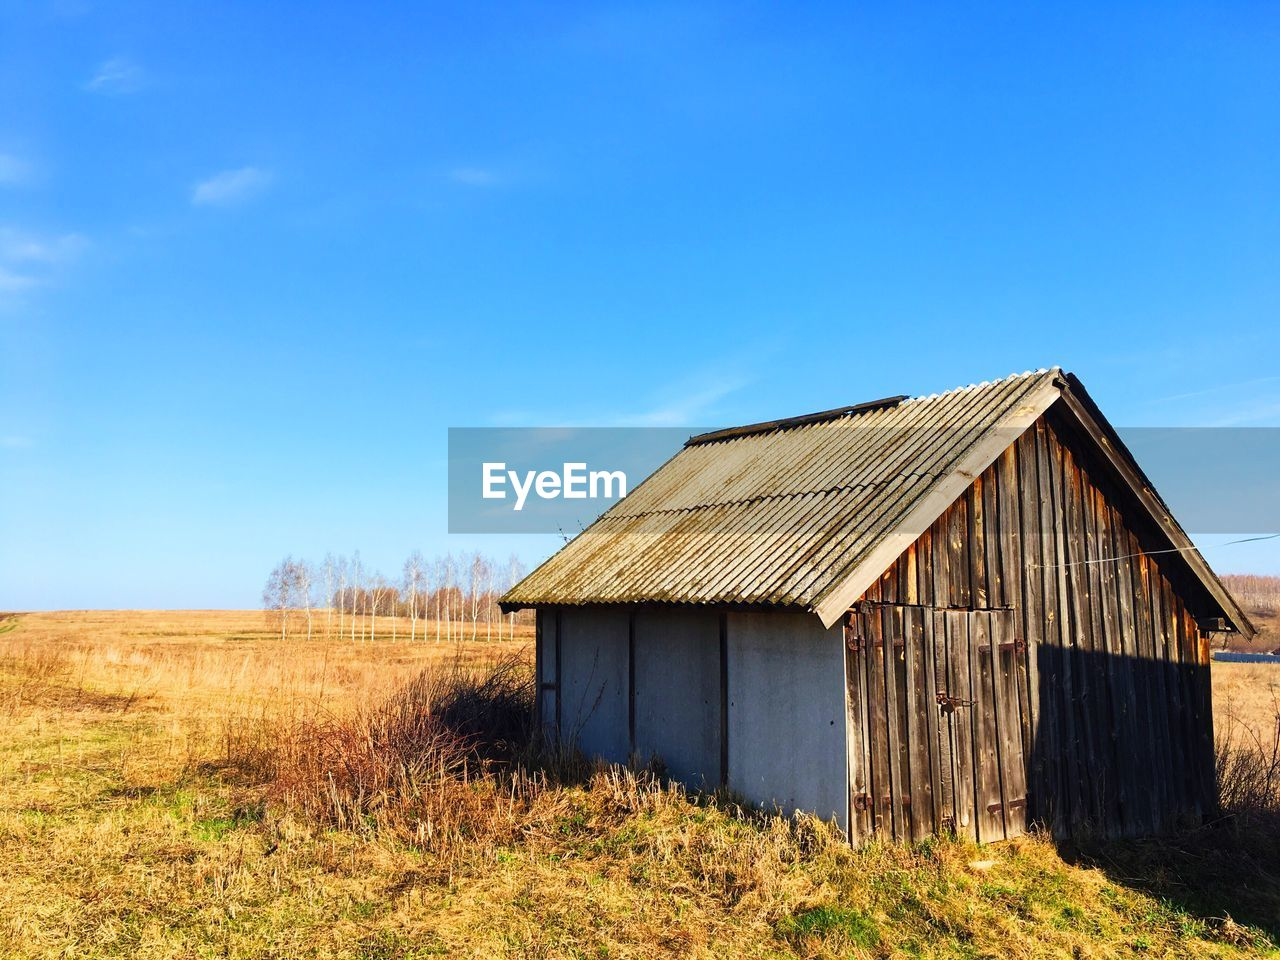 built structure, architecture, sky, field, blue, land, building exterior, nature, landscape, plant, wood - material, grass, day, building, no people, agricultural building, barn, environment, house, sunlight, outdoors